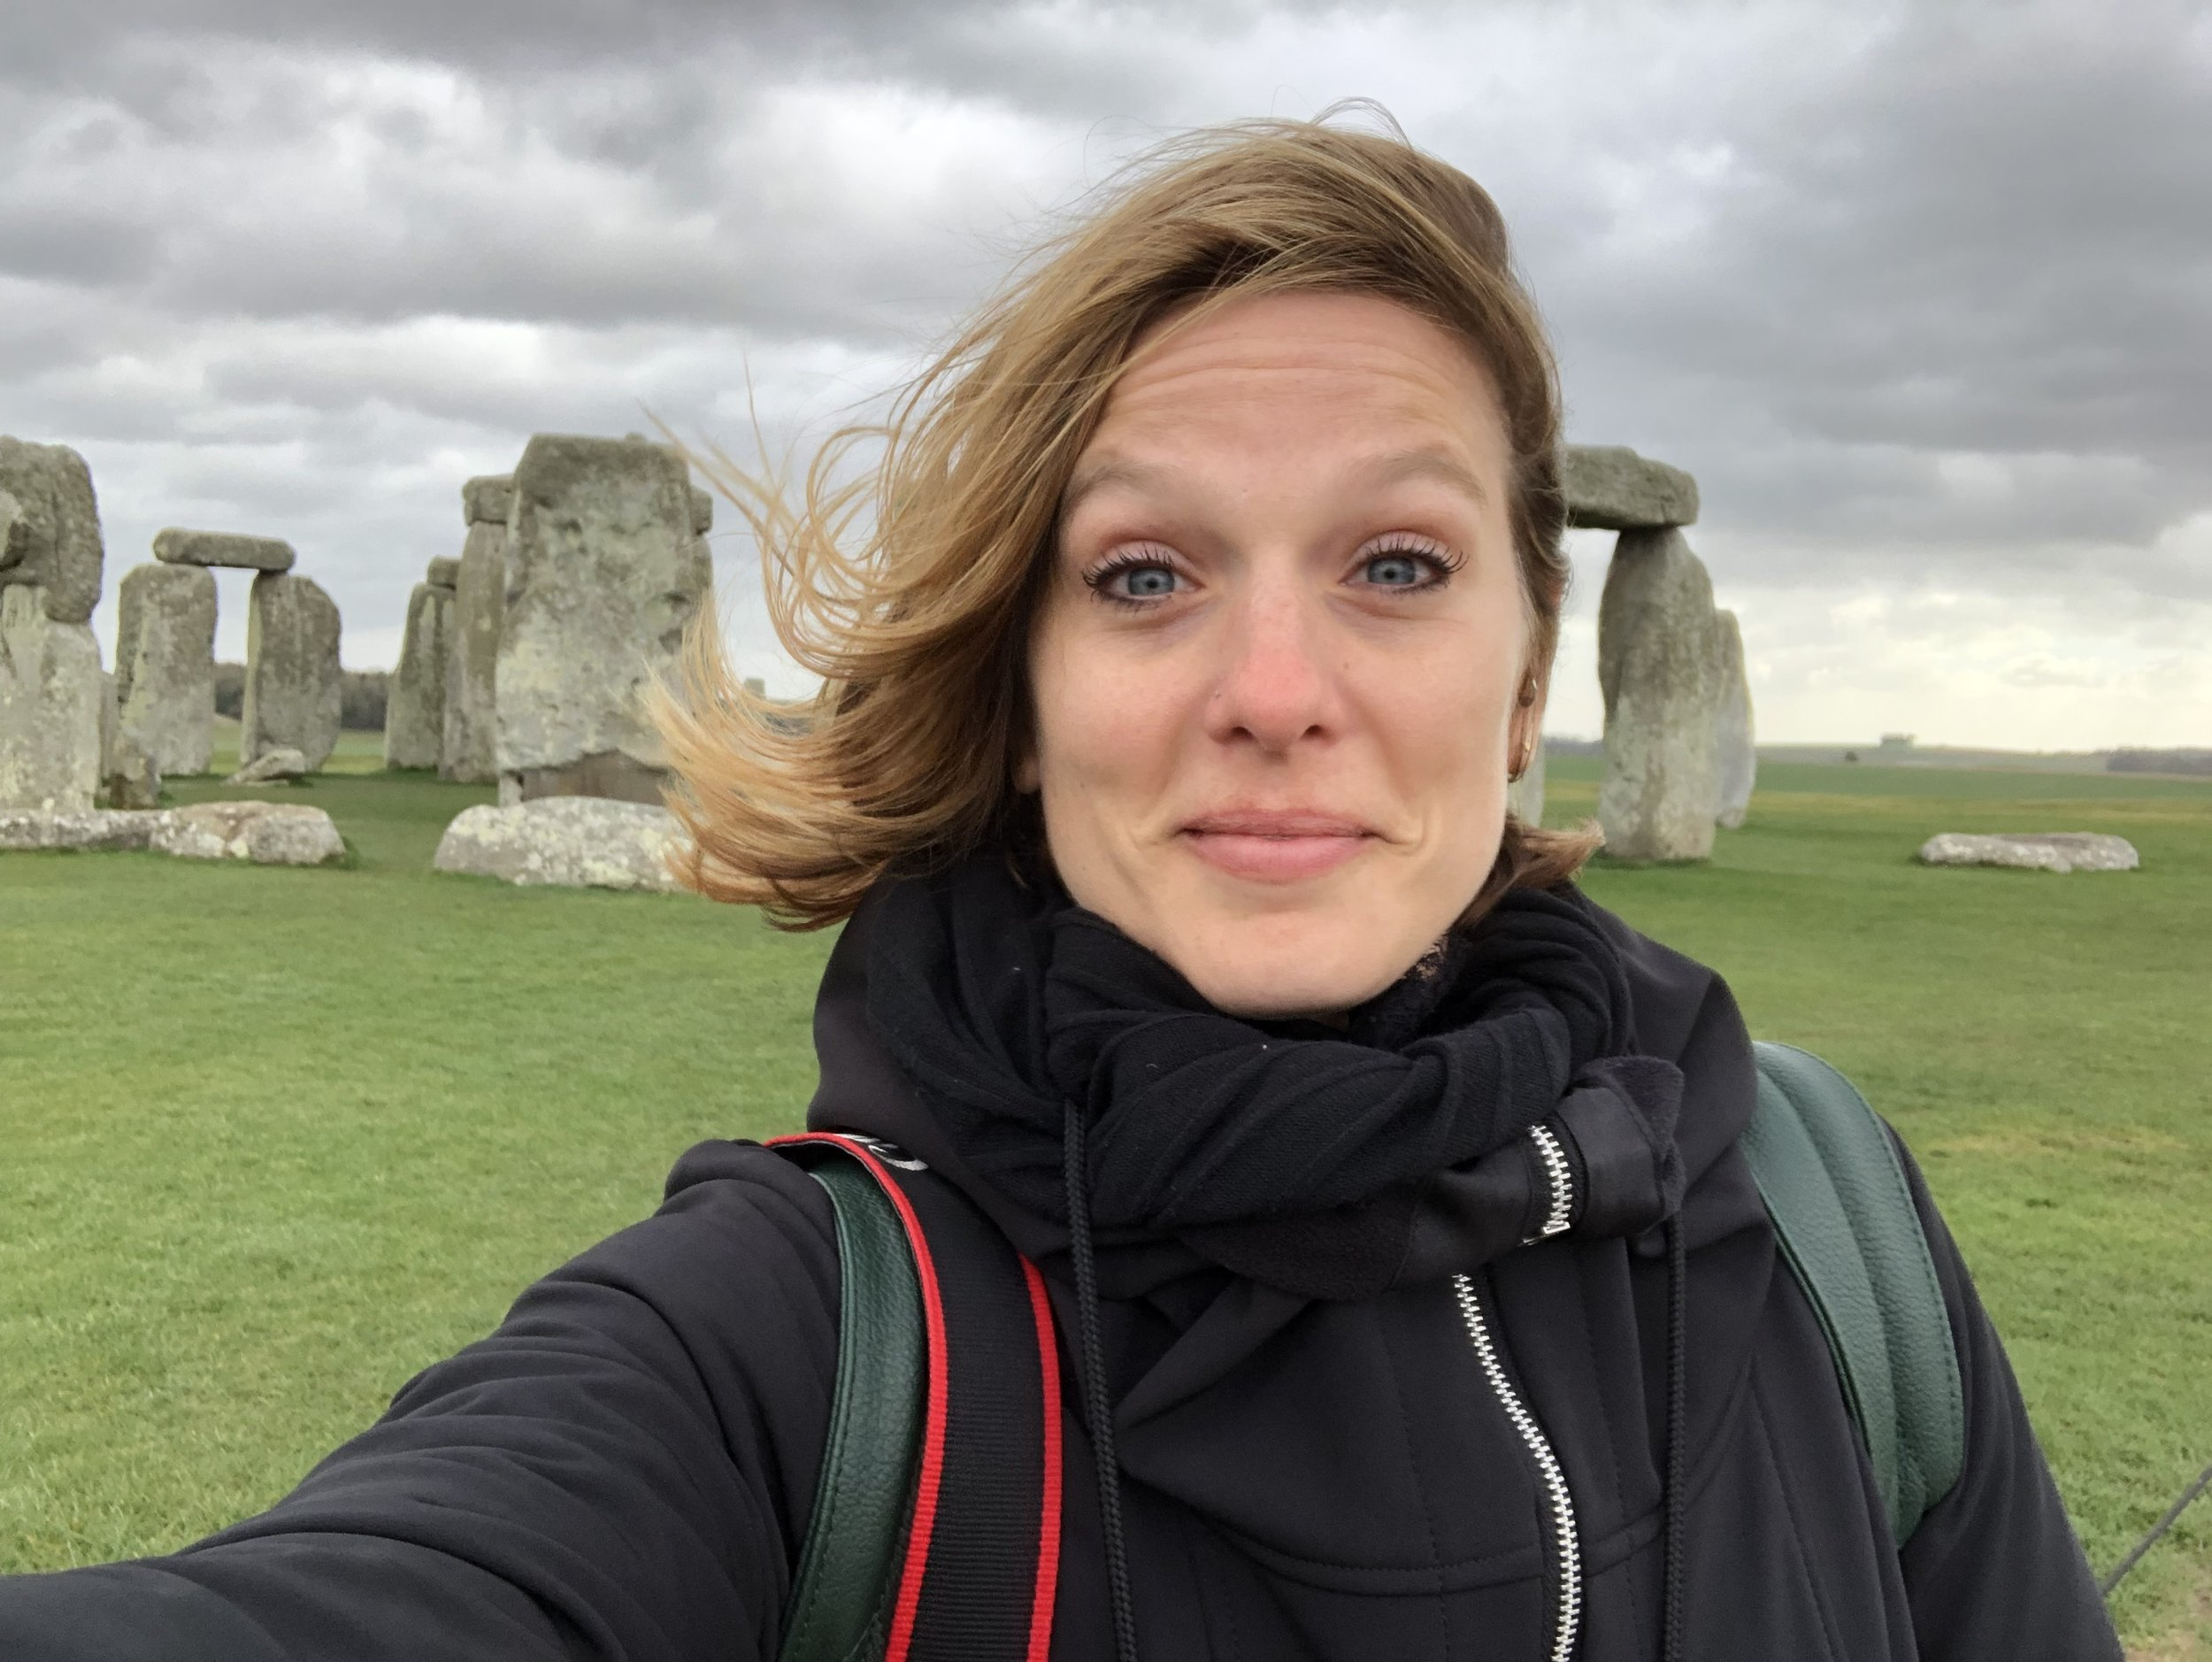 Me at Stonehenge, courtesy of me being able to work while traveling.